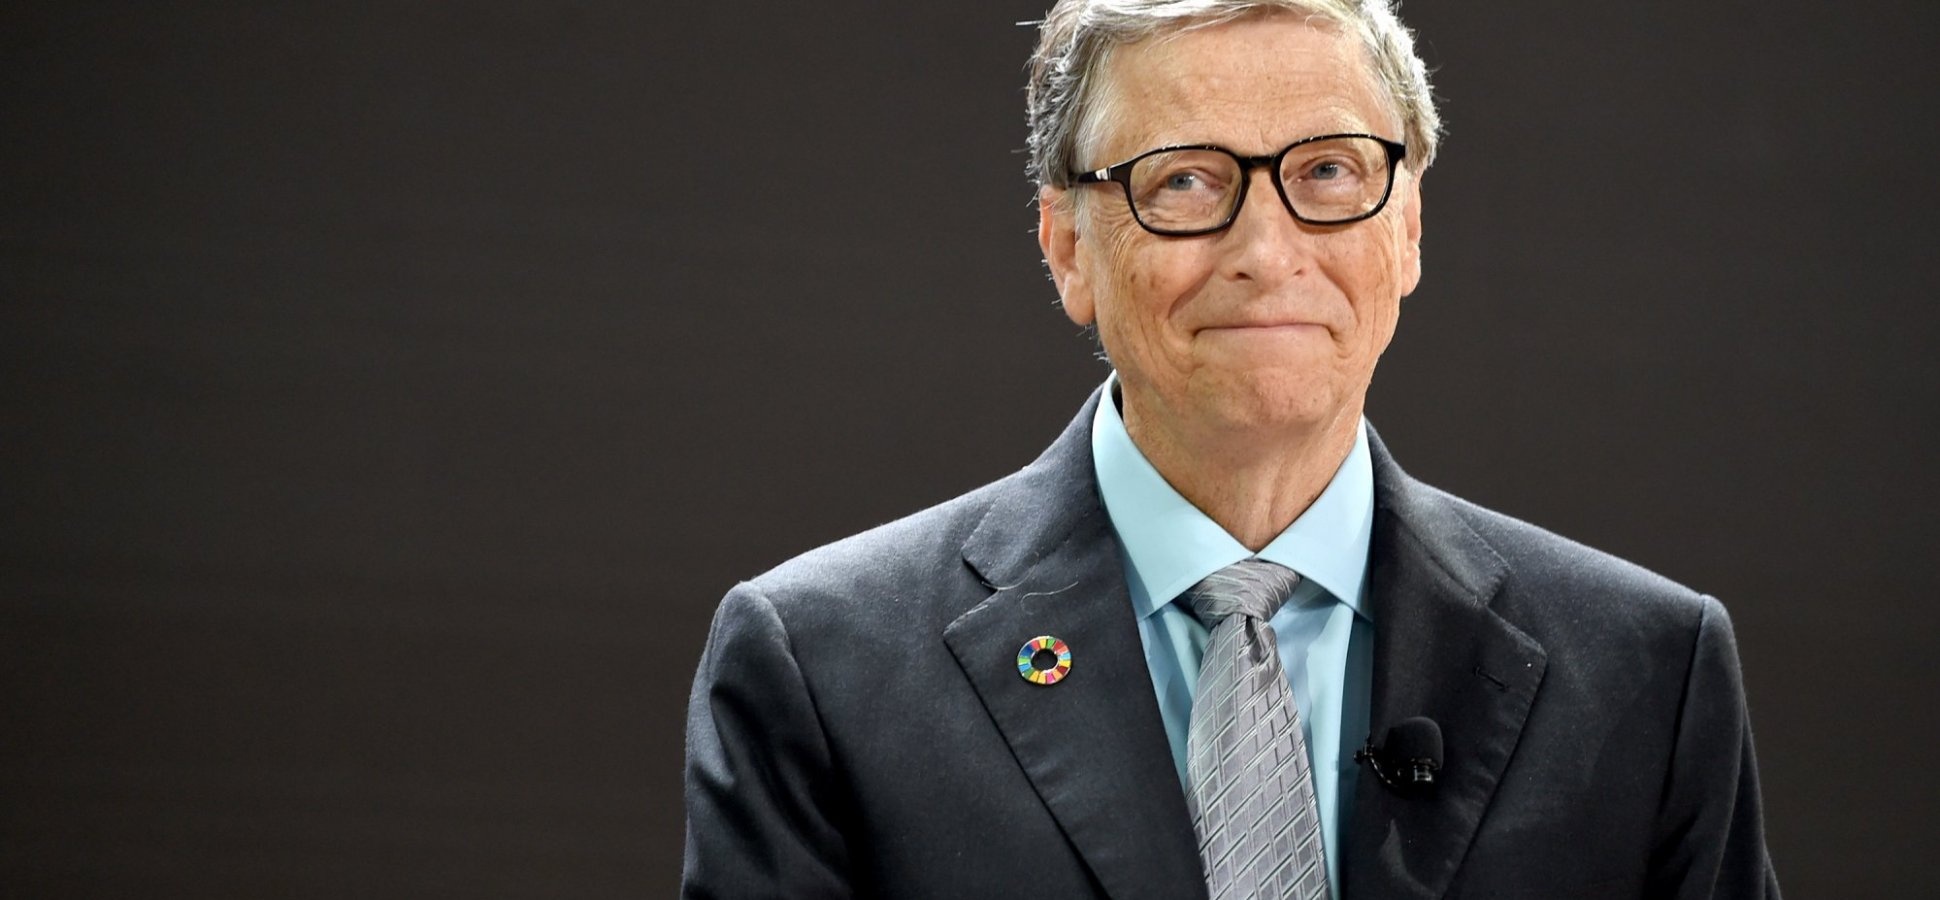 Bill Gates Says This 1 Insane Habit Separates Highly Successful People From Everyone Else.